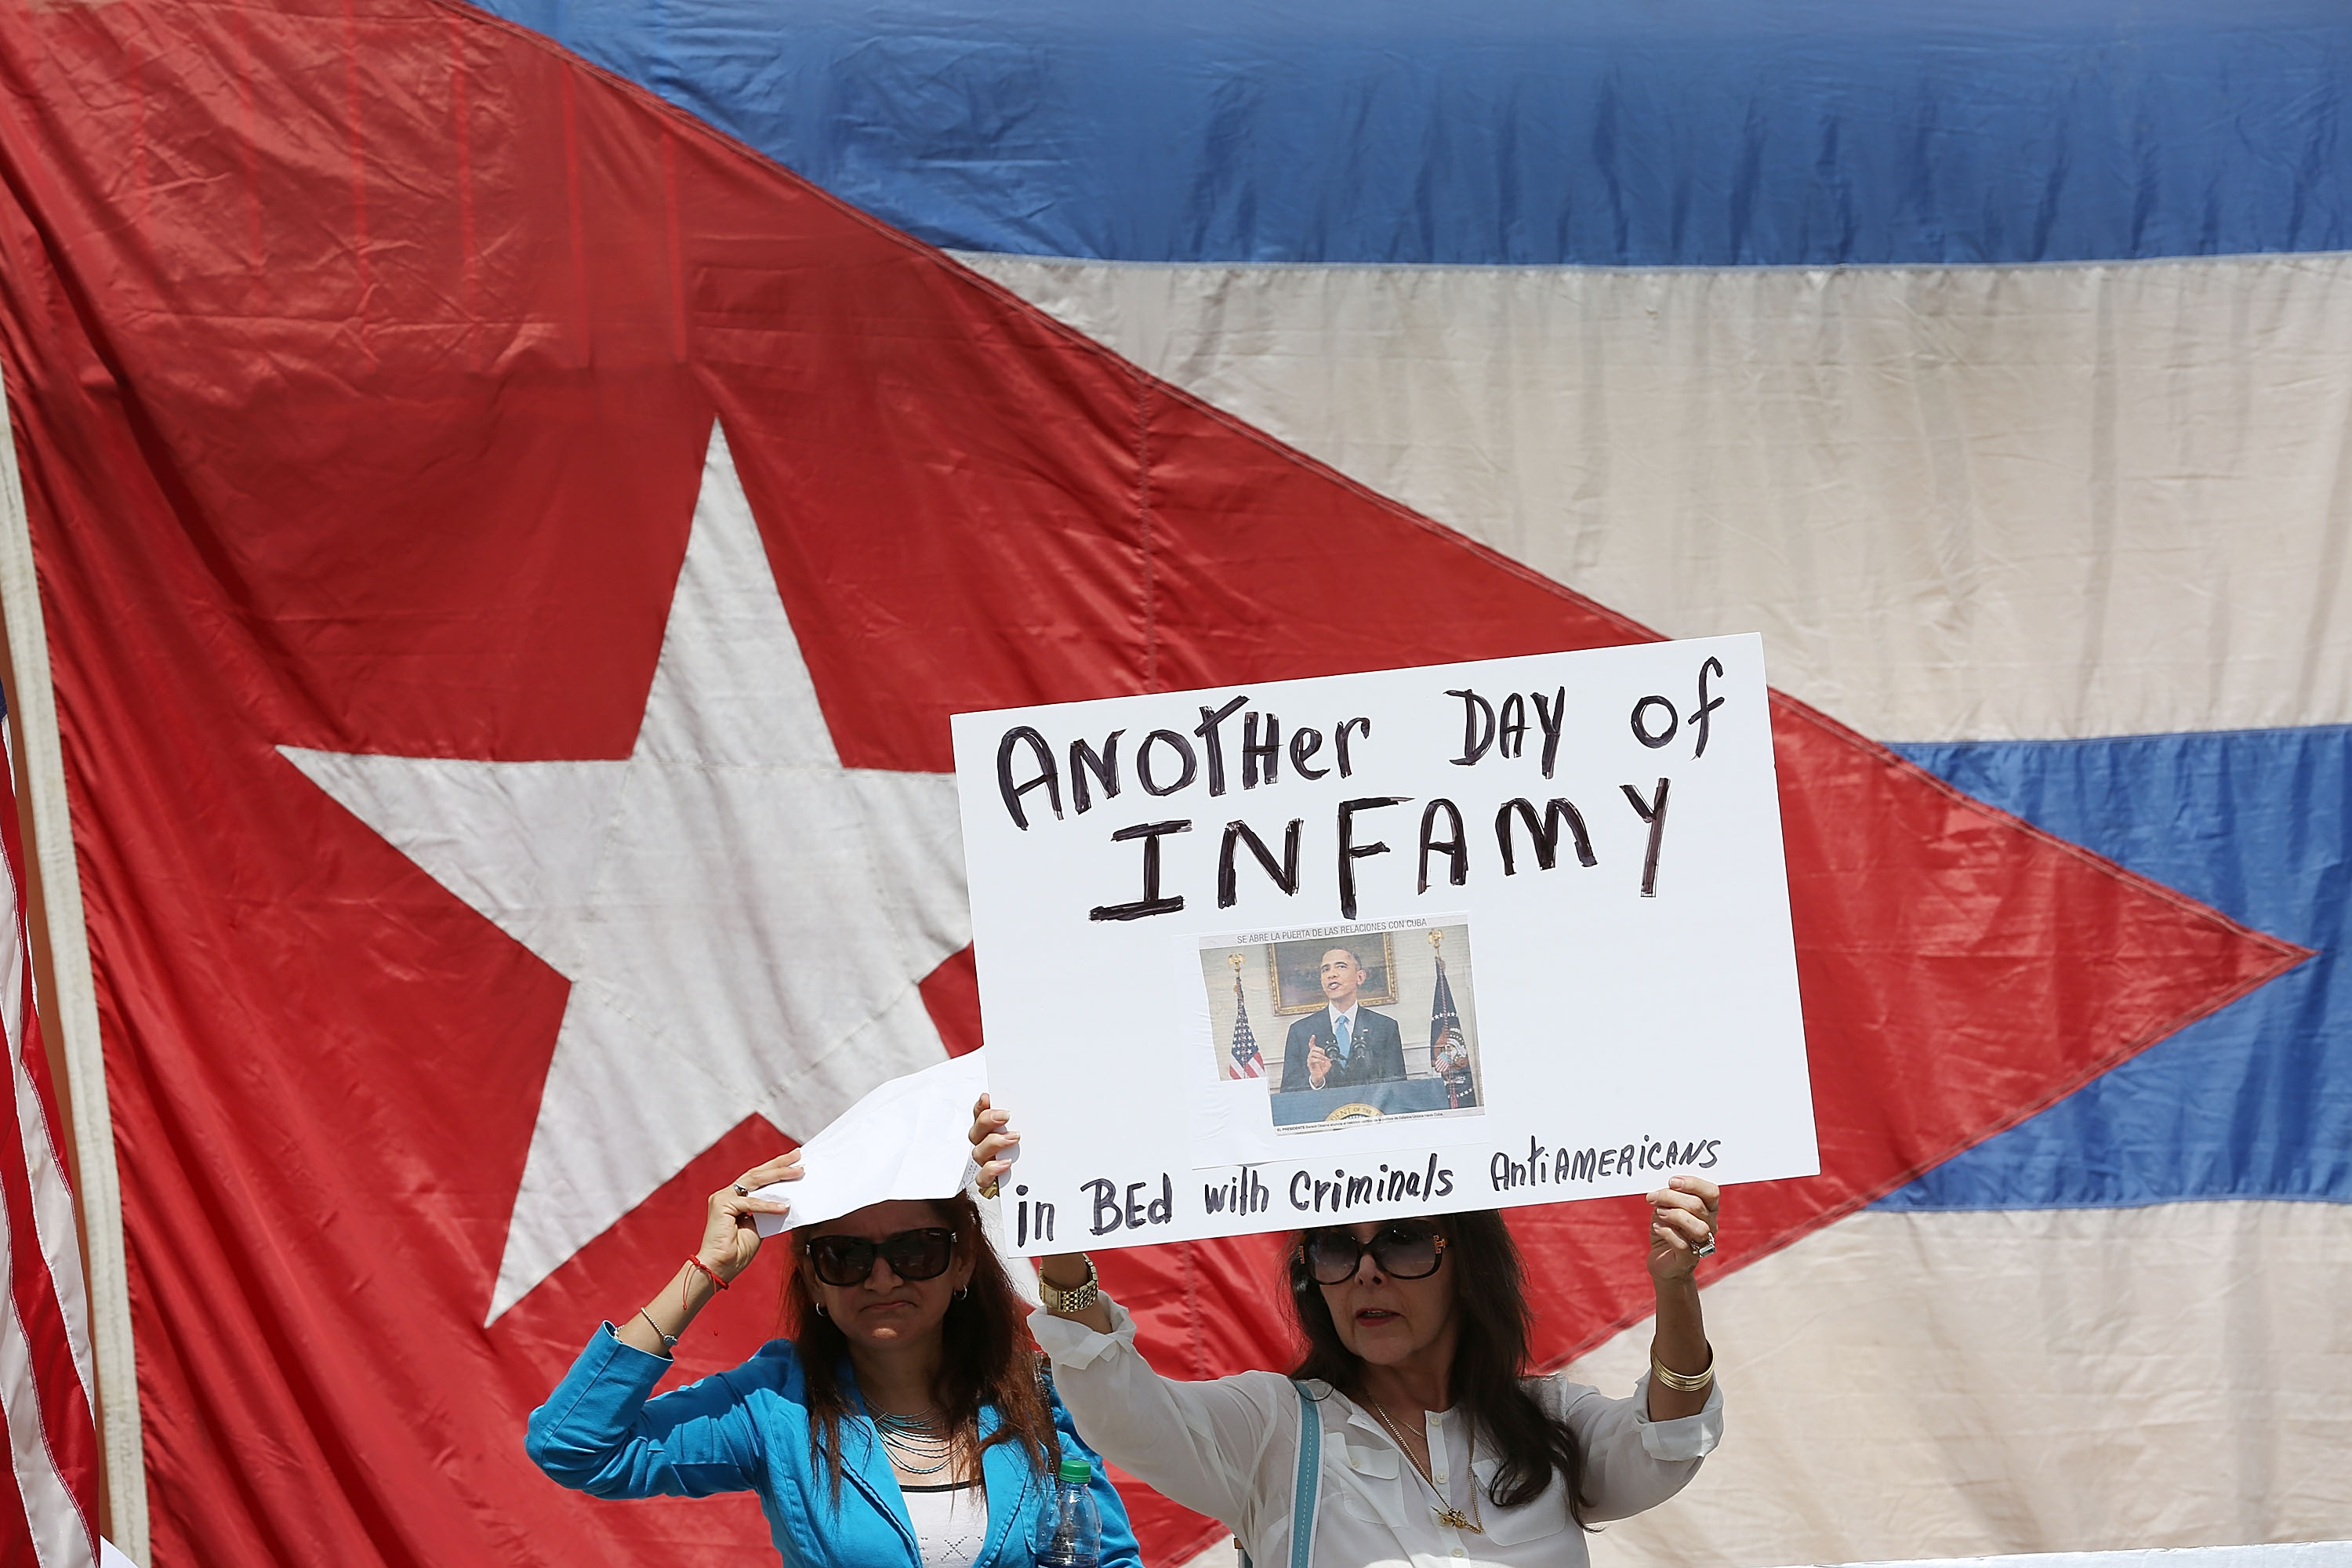 Laura Via Nelly holds a sign that reads, 'Another Day of Infamy', as she shows her displeasure, in the Little Havana neighborhood, with the normalization of the Cuban/United States relationship as the Cuban Embassy opens after a 54 year absence in Washington, DC on July 20, 2015 in Miami, Florida. The United States and Cuba have now established a restoration of full diplomatic relations 54 years after they had ended. (Photo by Joe Raedle/Getty Images)